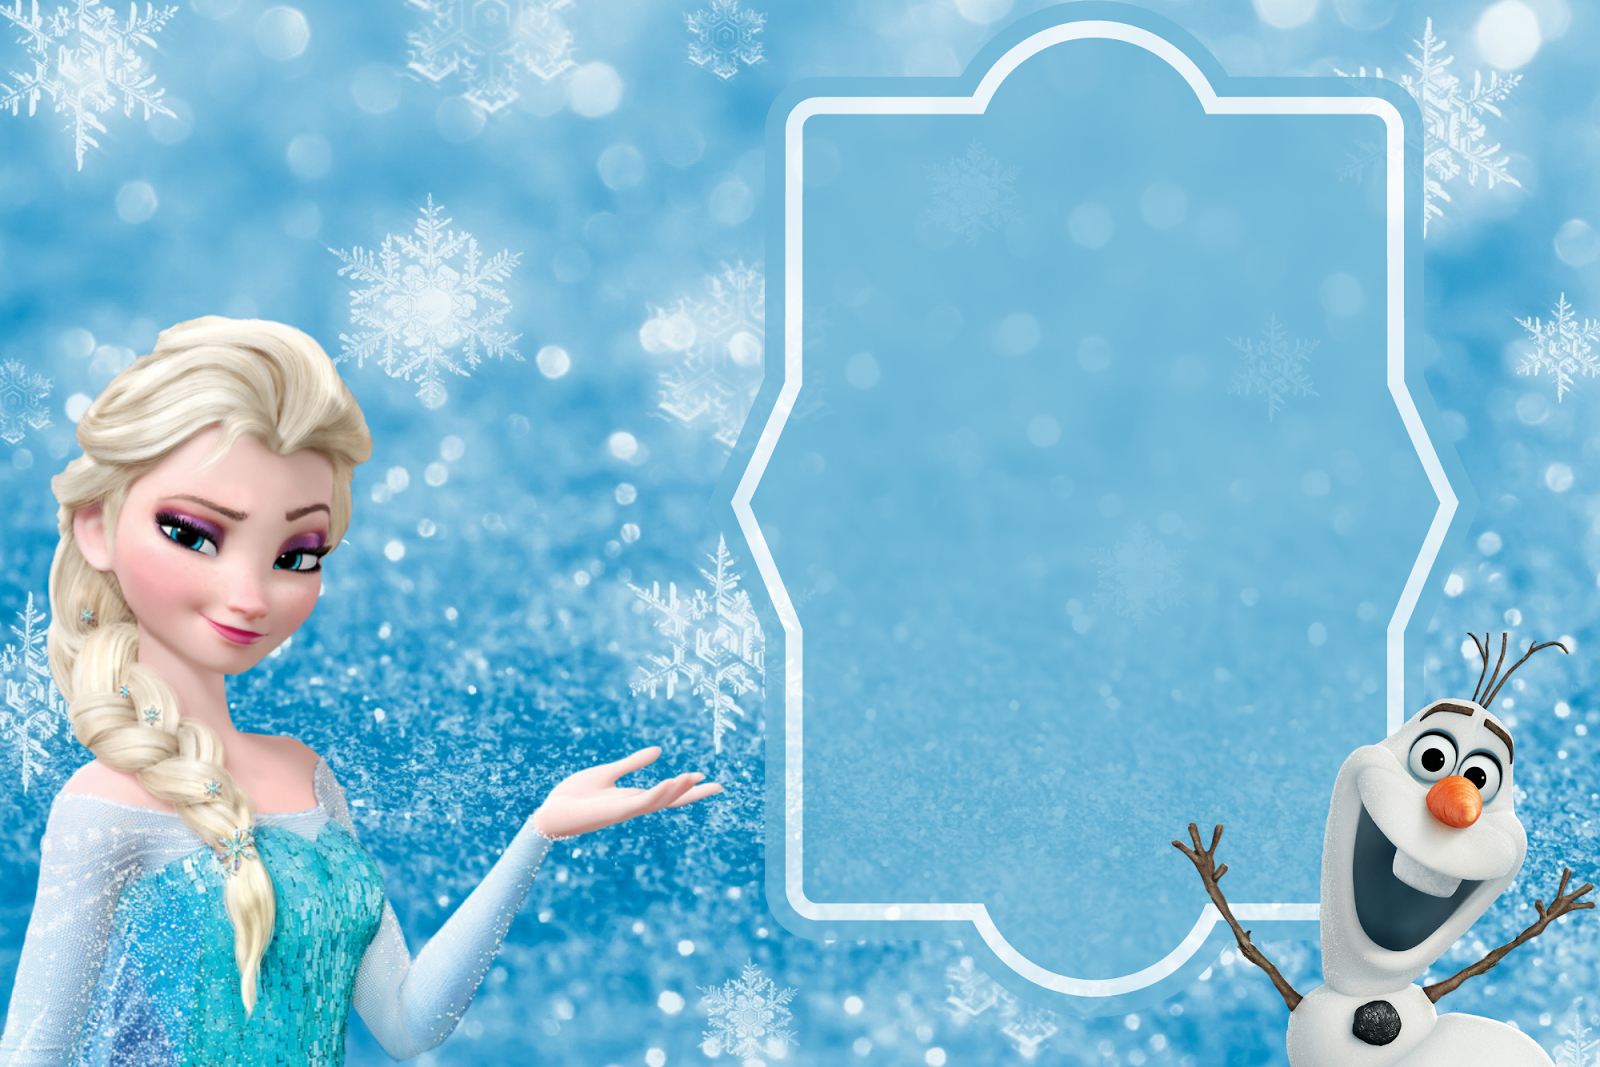 Free Frozen Party Invitation Template Download + Party Ideas And - Free Printable Frozen Birthday Invitations